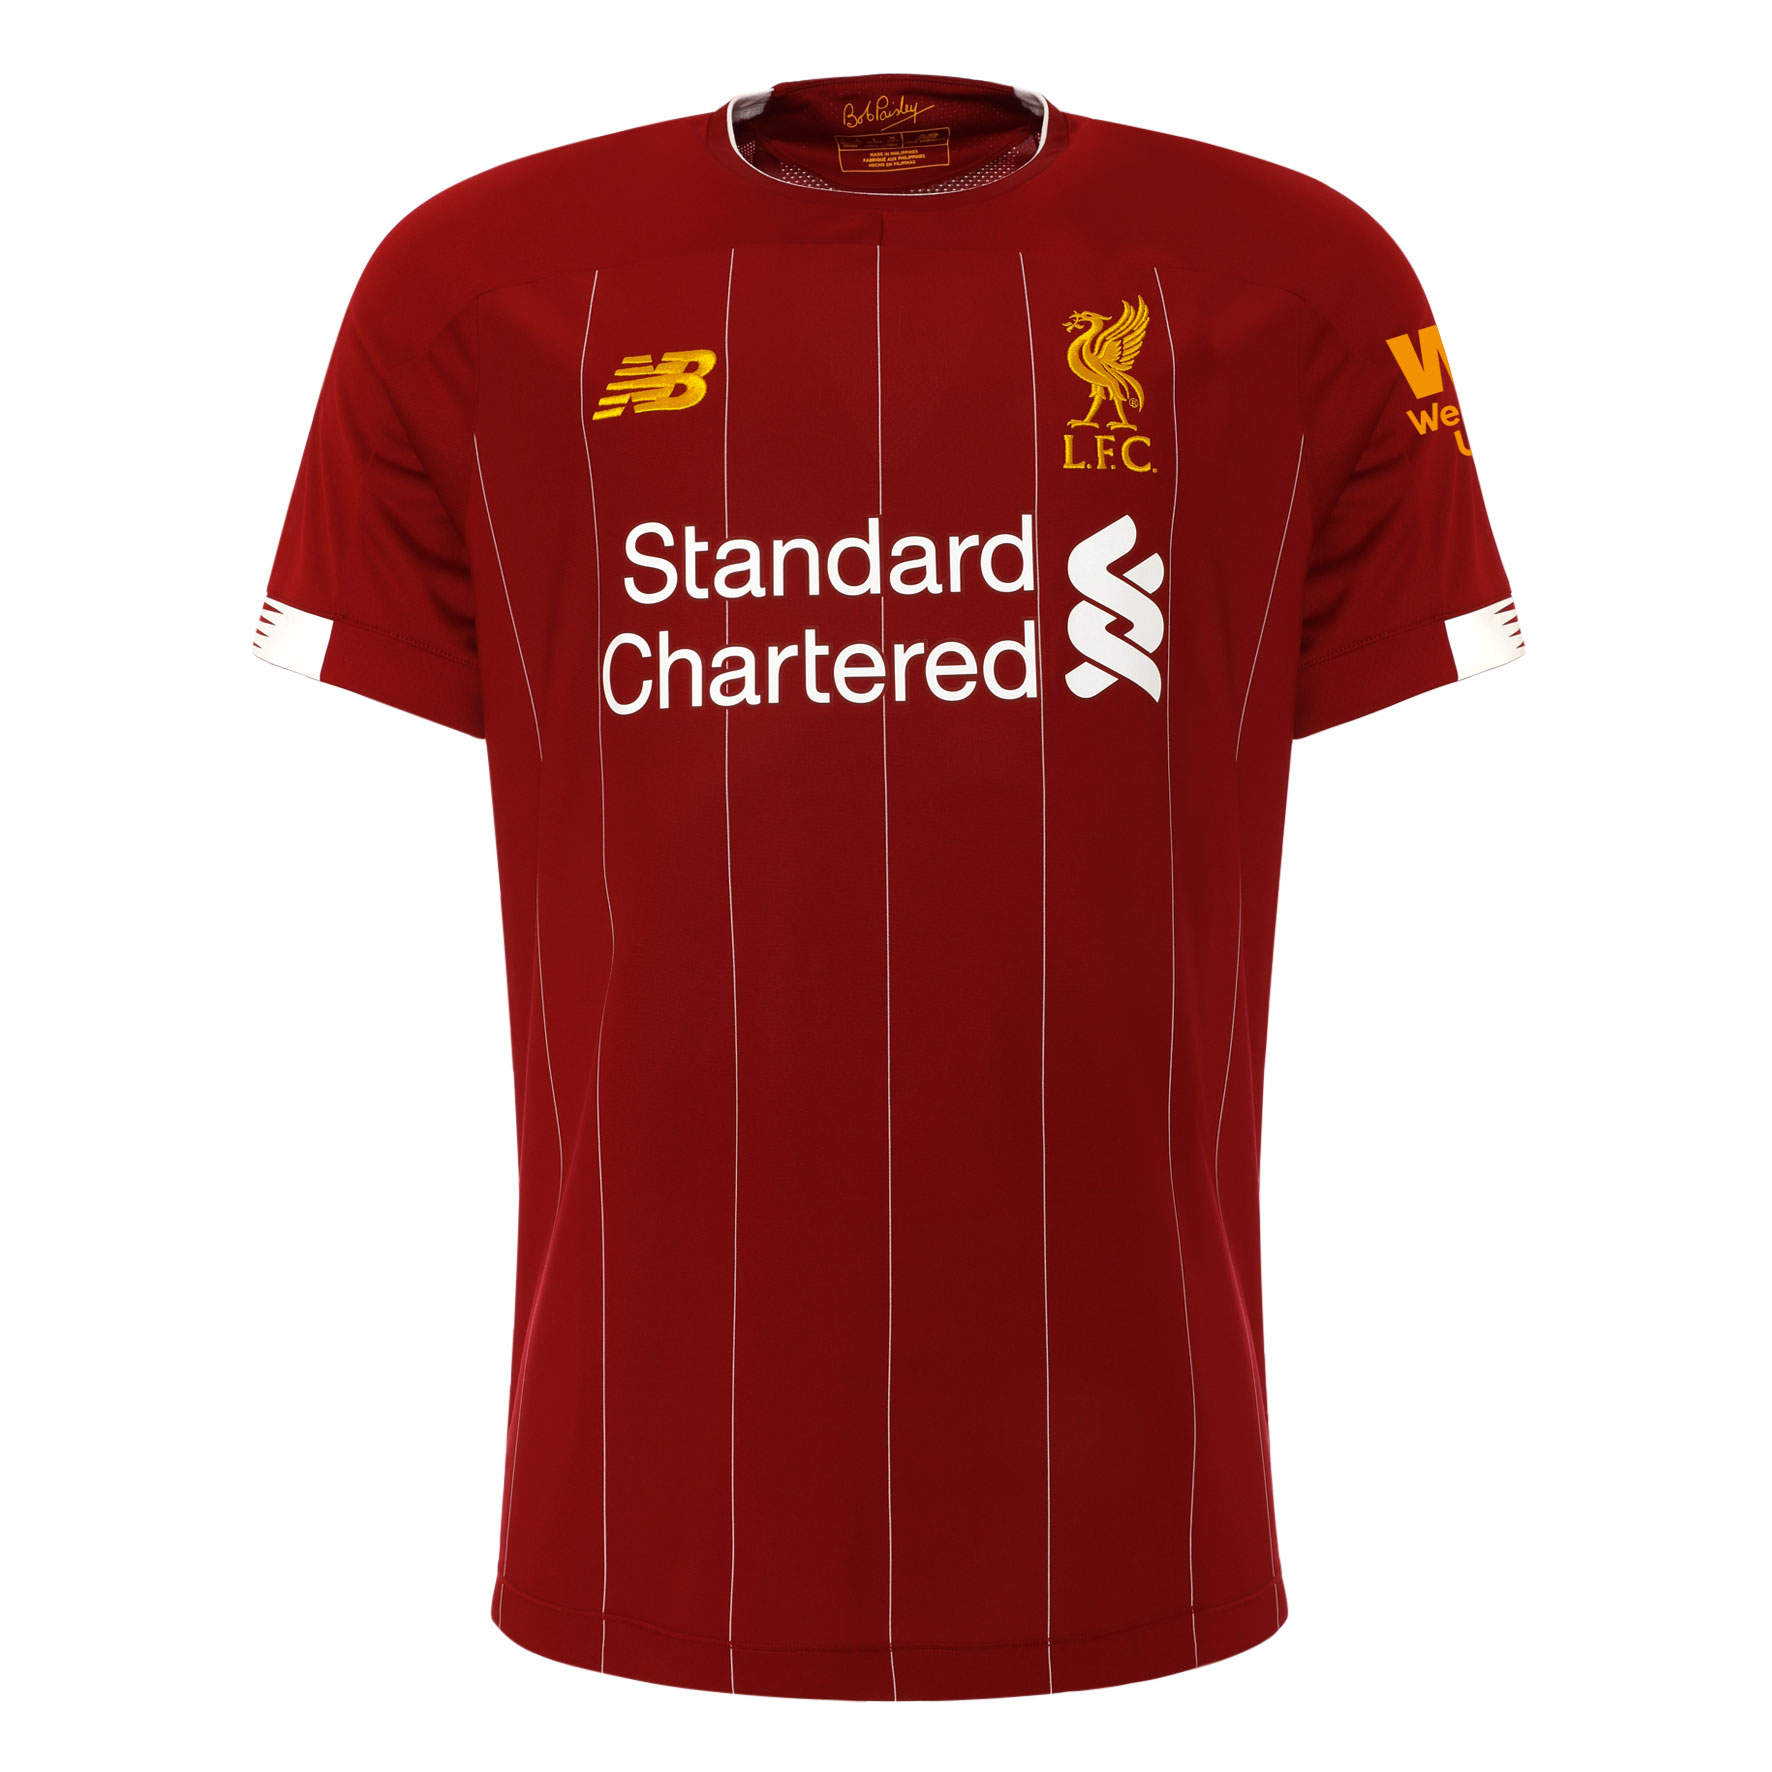 "387f3543cf2 ""This year's home kit is incredibly strong,"" said Reds captain Jordan  Henderson. ""I'm really looking forward to wearing it every time we play at  our beloved ..."